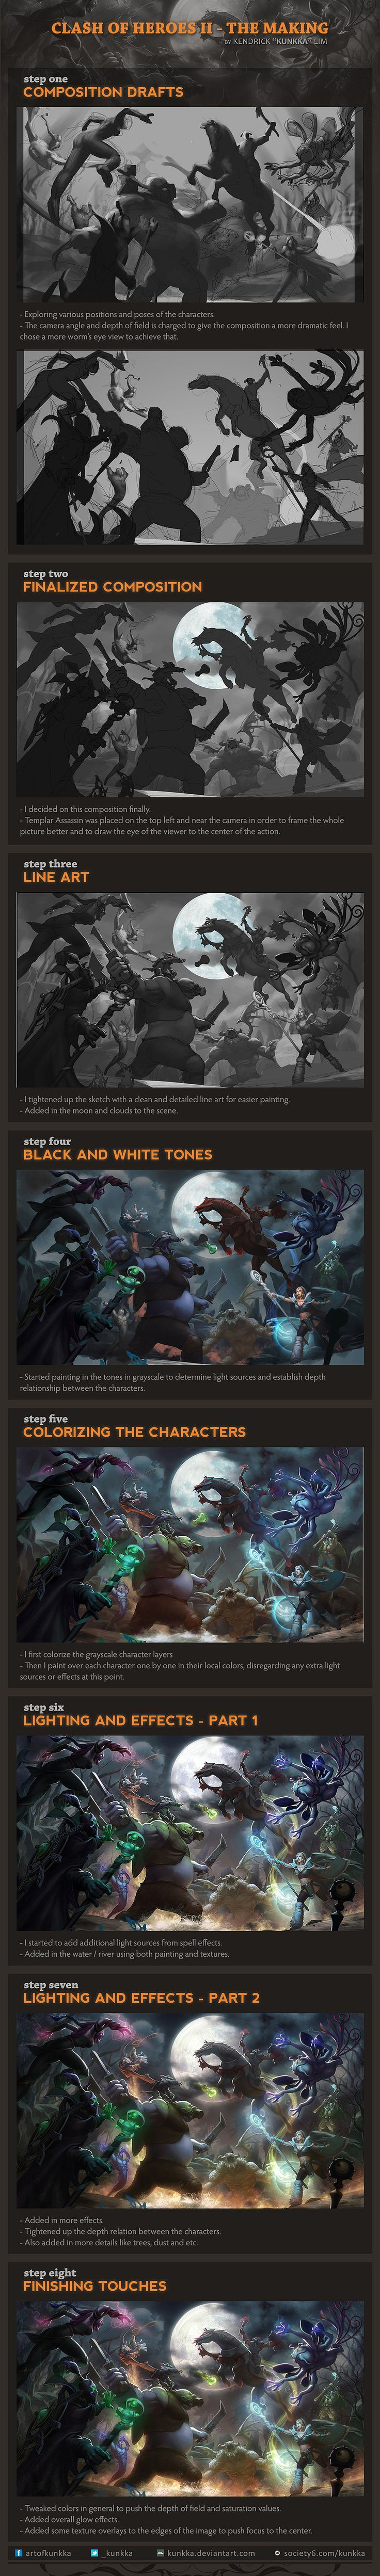 Clash of Heroes II step-by-step by kunkka on deviantART